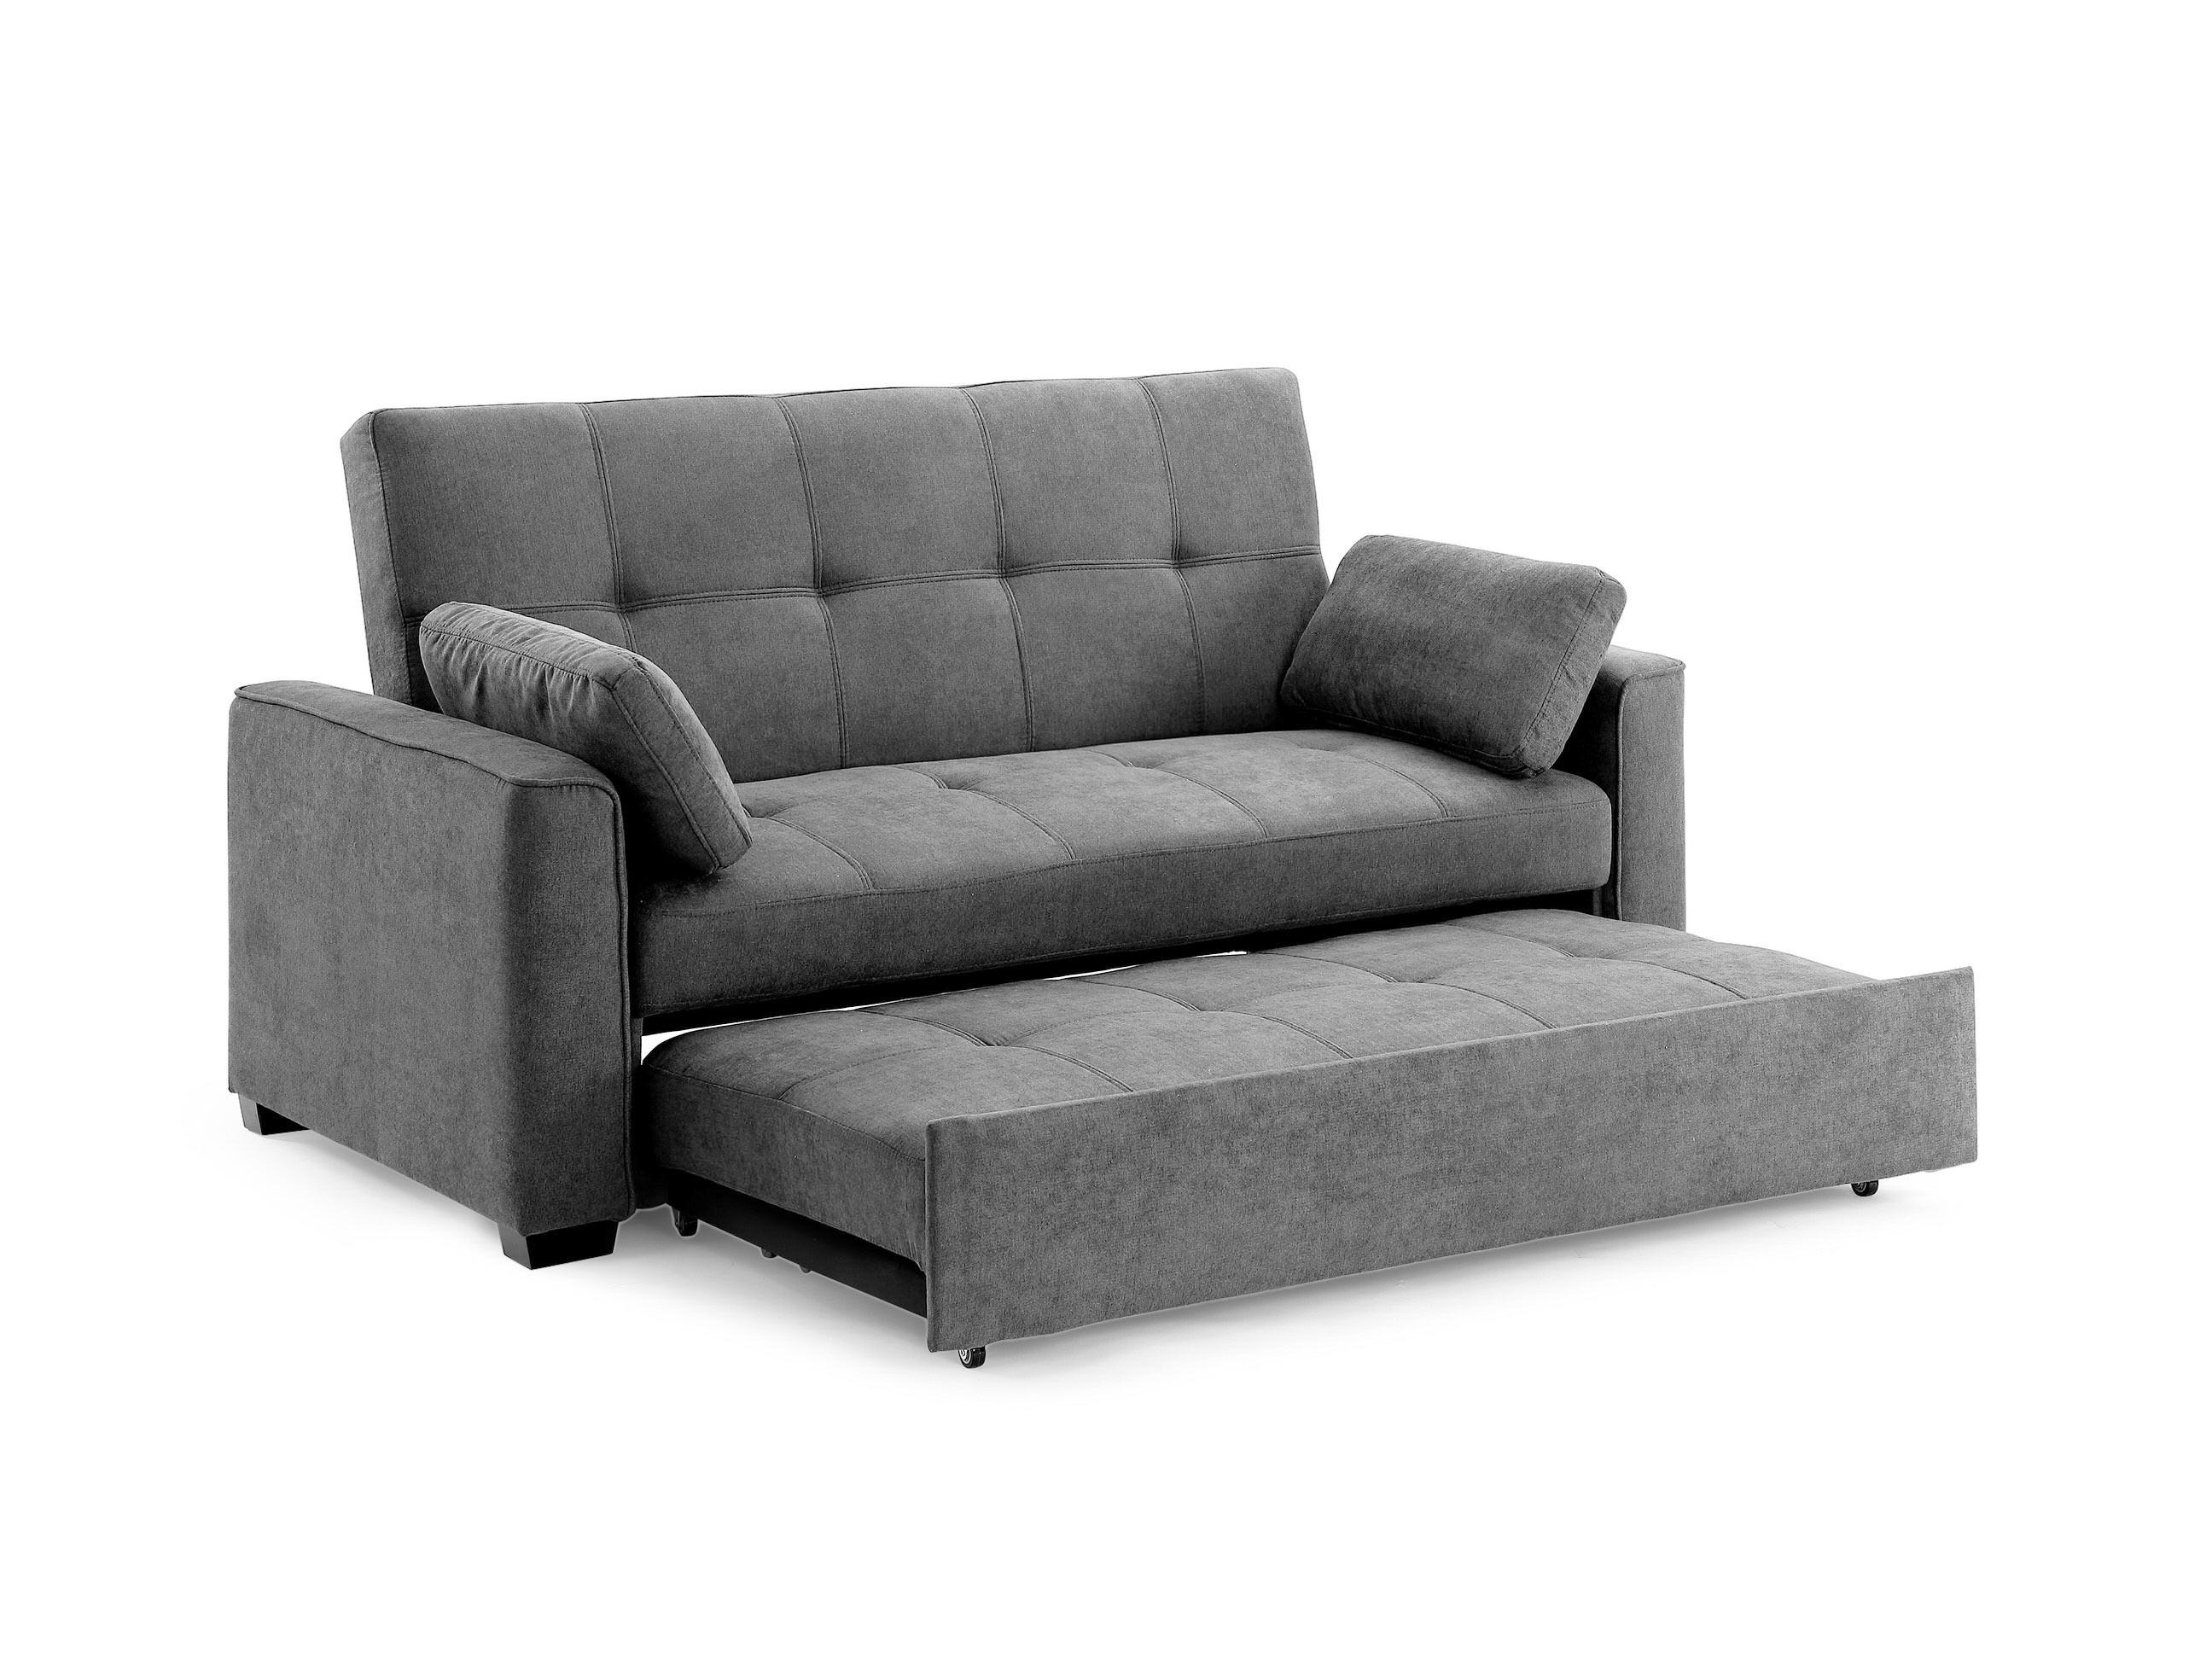 century garden novogratz home loveseat product linen vintage strick mid futon overstock today shipping bolton free mix ellington